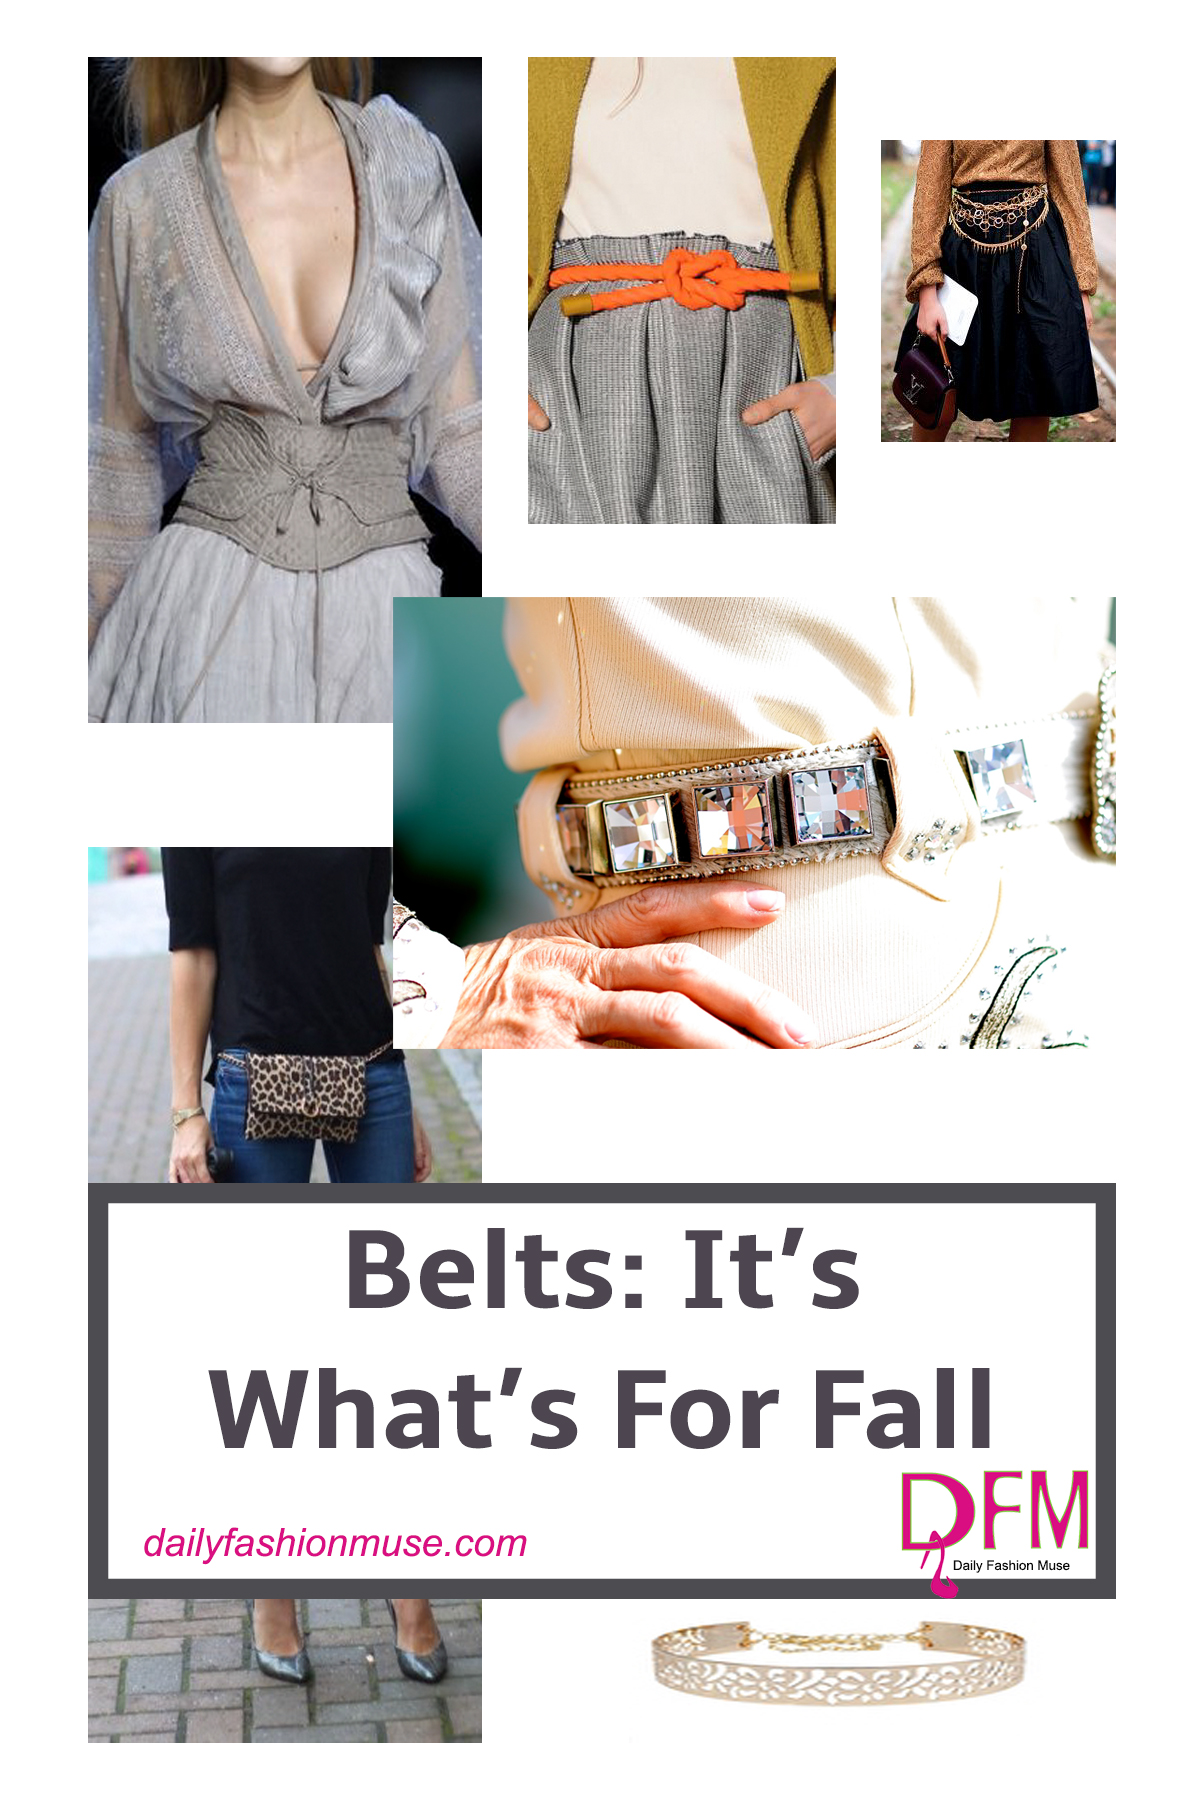 Fall belt trends for 2016/2017 are anything but for holding up your pants. It is all about excess and showcasing that beautiful waistline.